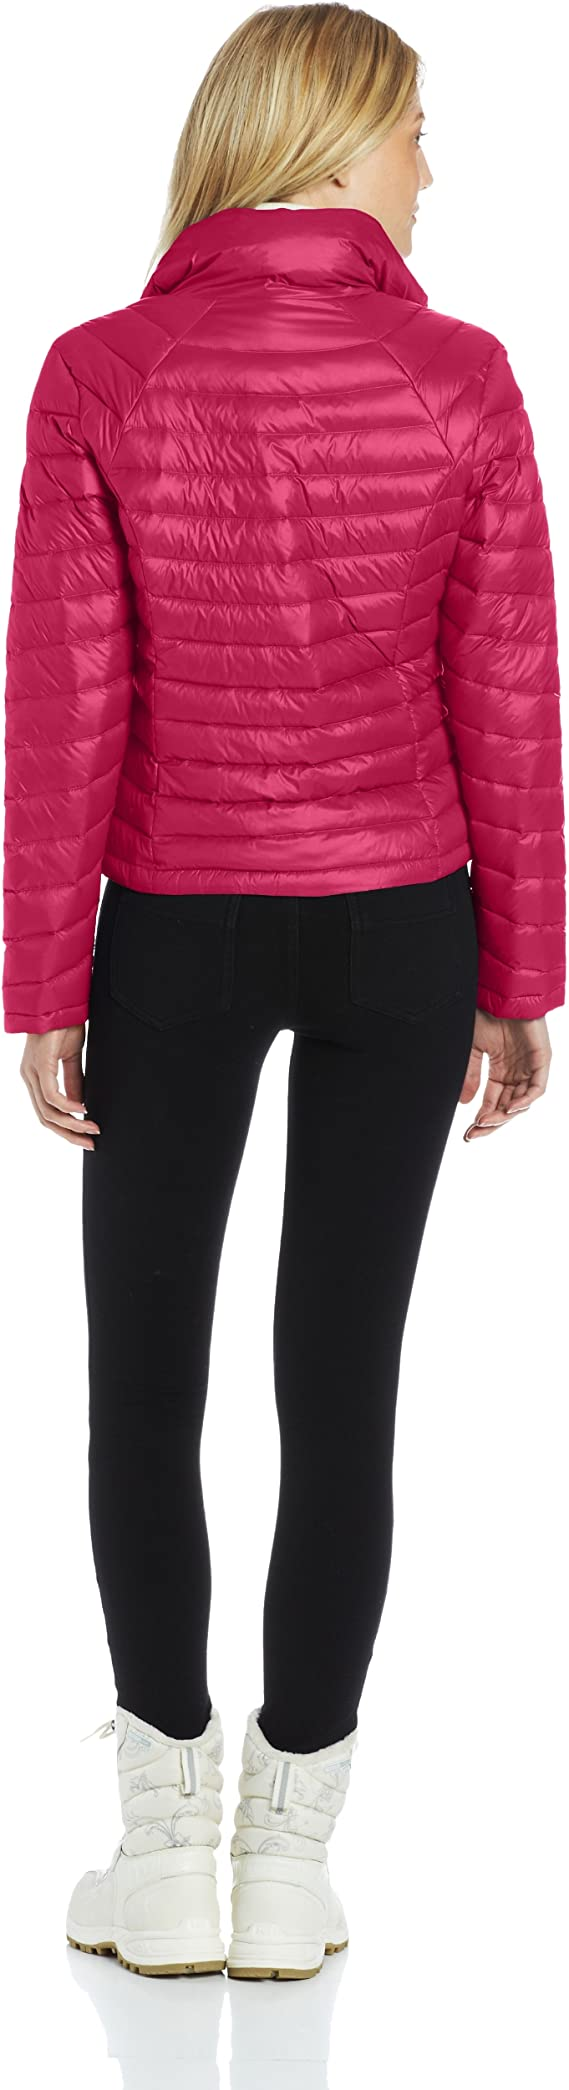 Tommy Hilfiger Women's Packable Down Jacket with Wave Quilting